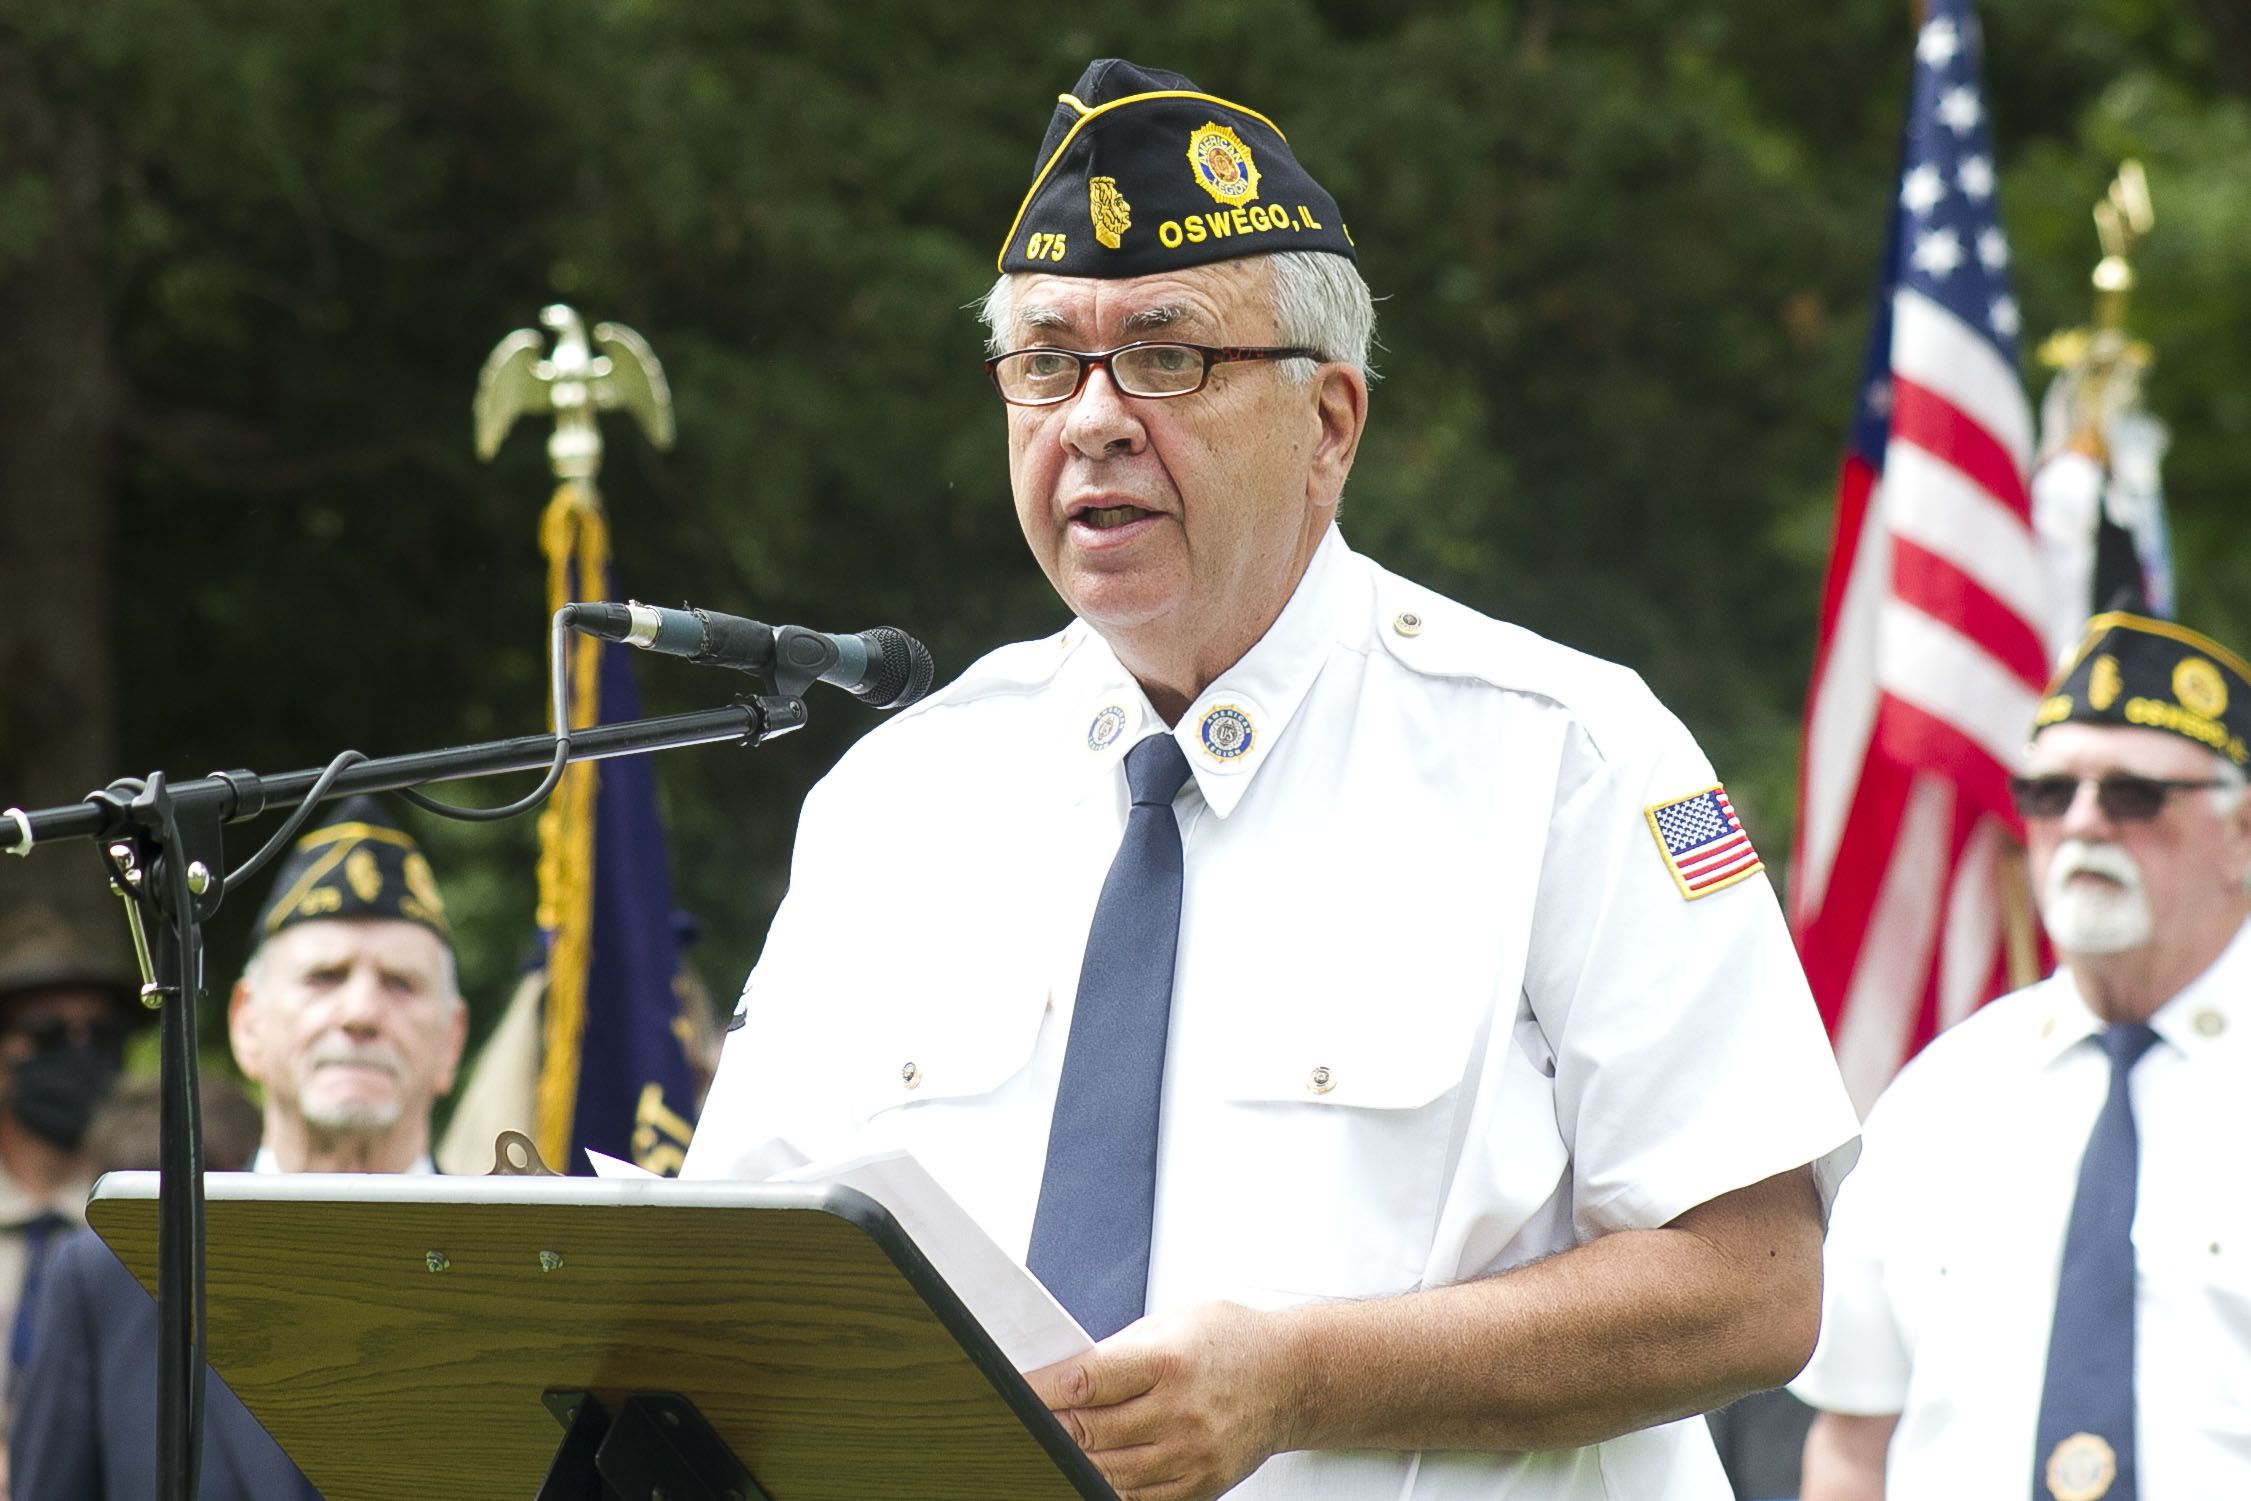 Oswego American Legion Post 675 Commander Joe West welcomed crowds to the Oswego Township Ceremony to observe the annual Memorial Day ceremony, following a parade through downtown Oswego.